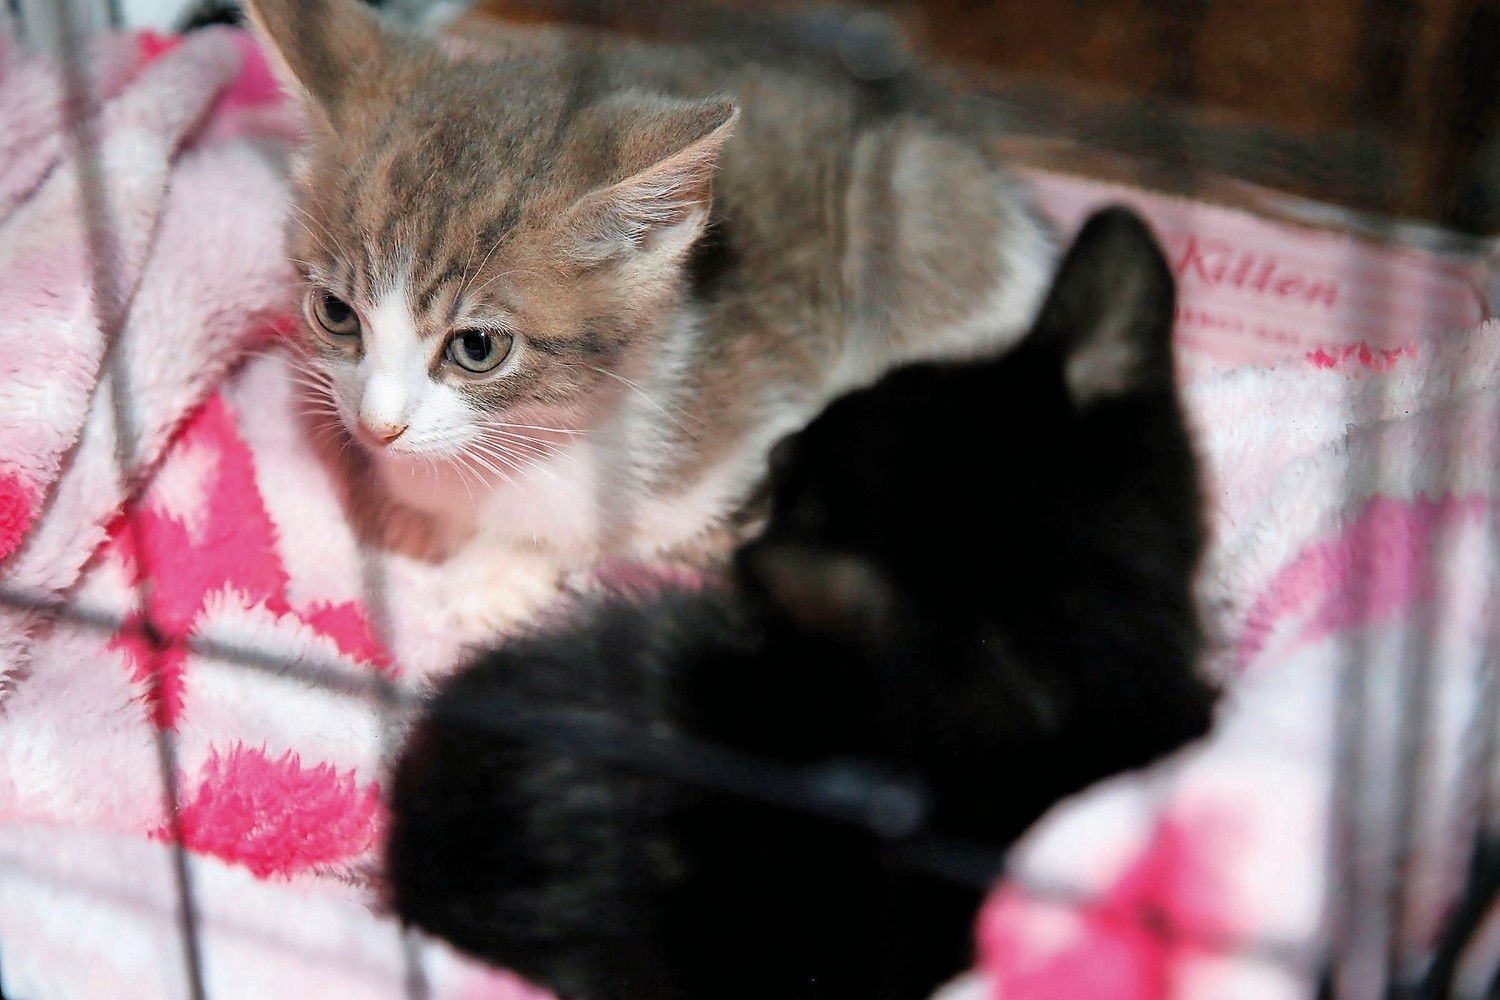 Kittens Aladdin and Ariel were two of several strays rescued by Courageous Cats volunteers.